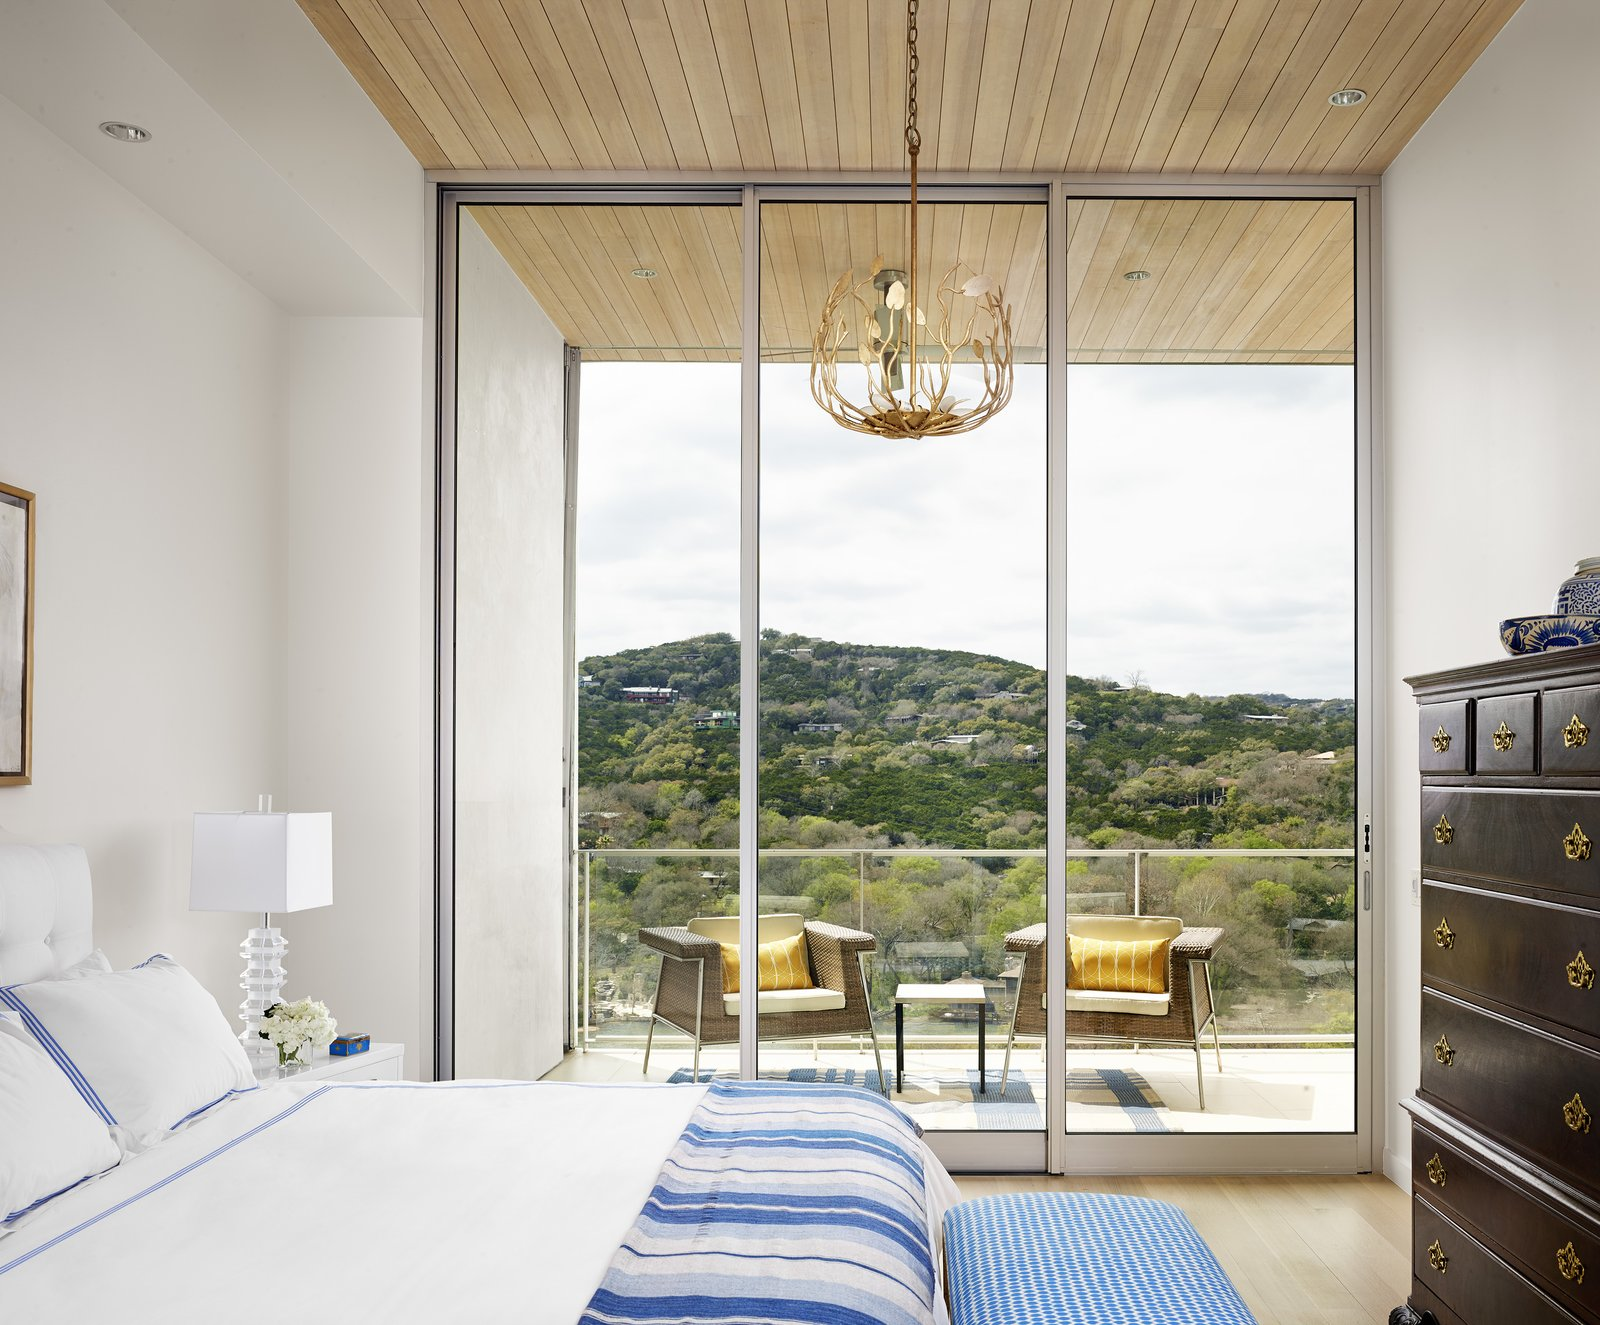 Guest bedroom  Lakeshore Residence by Texas Construction Company